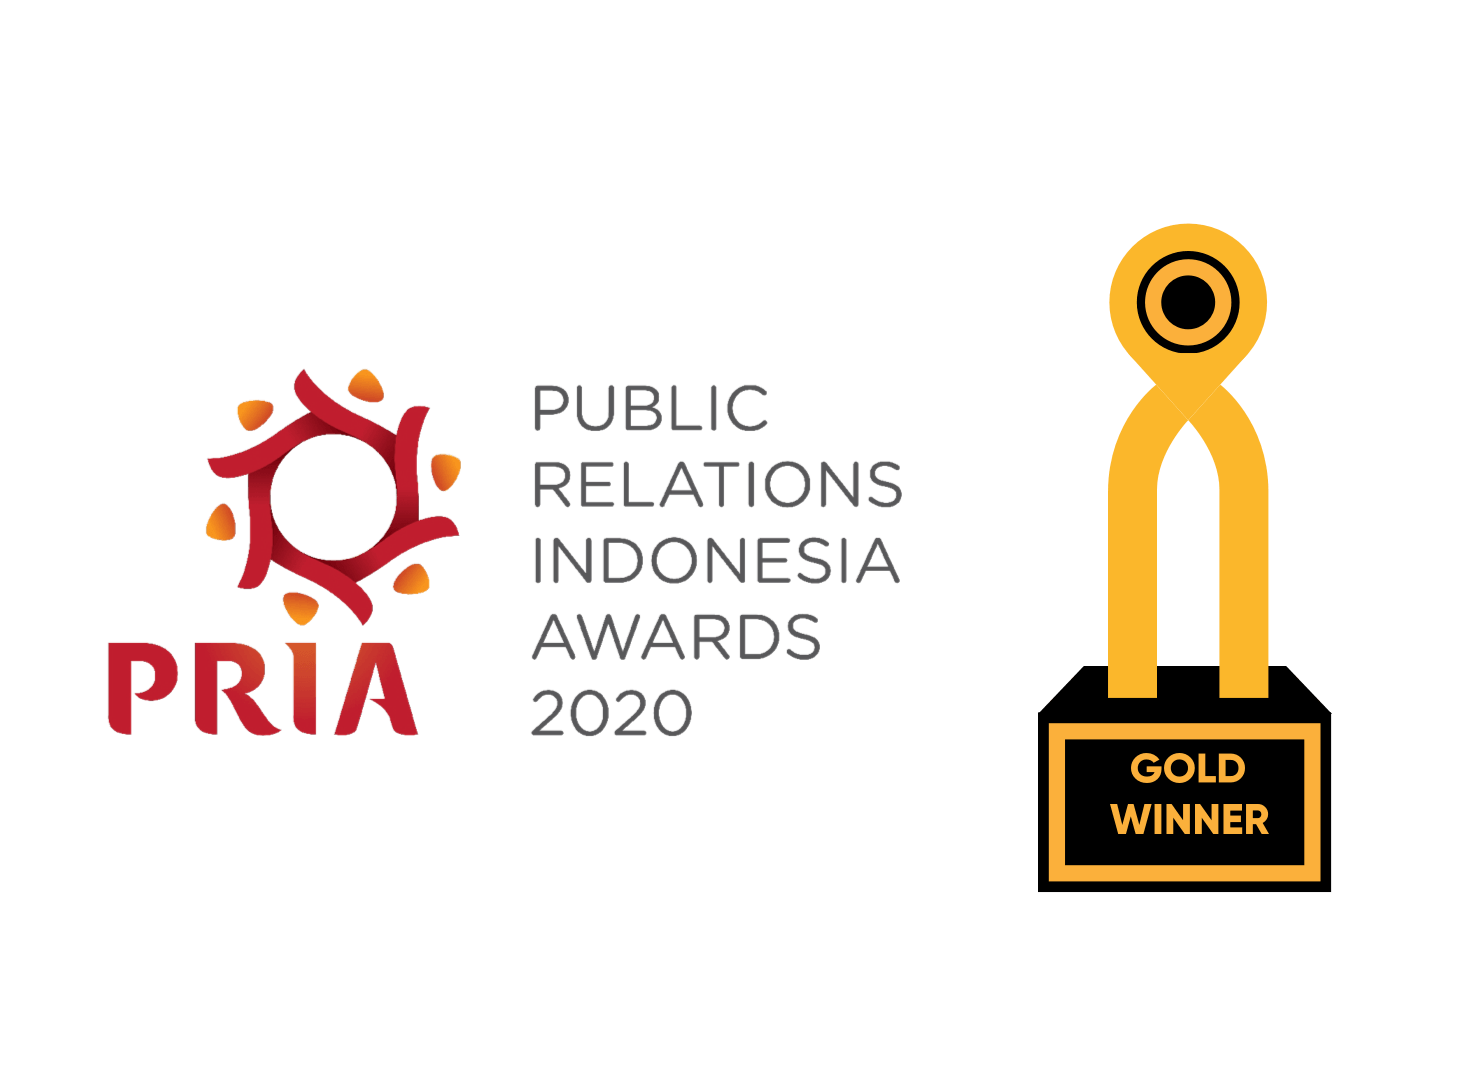 gold winner pria awards